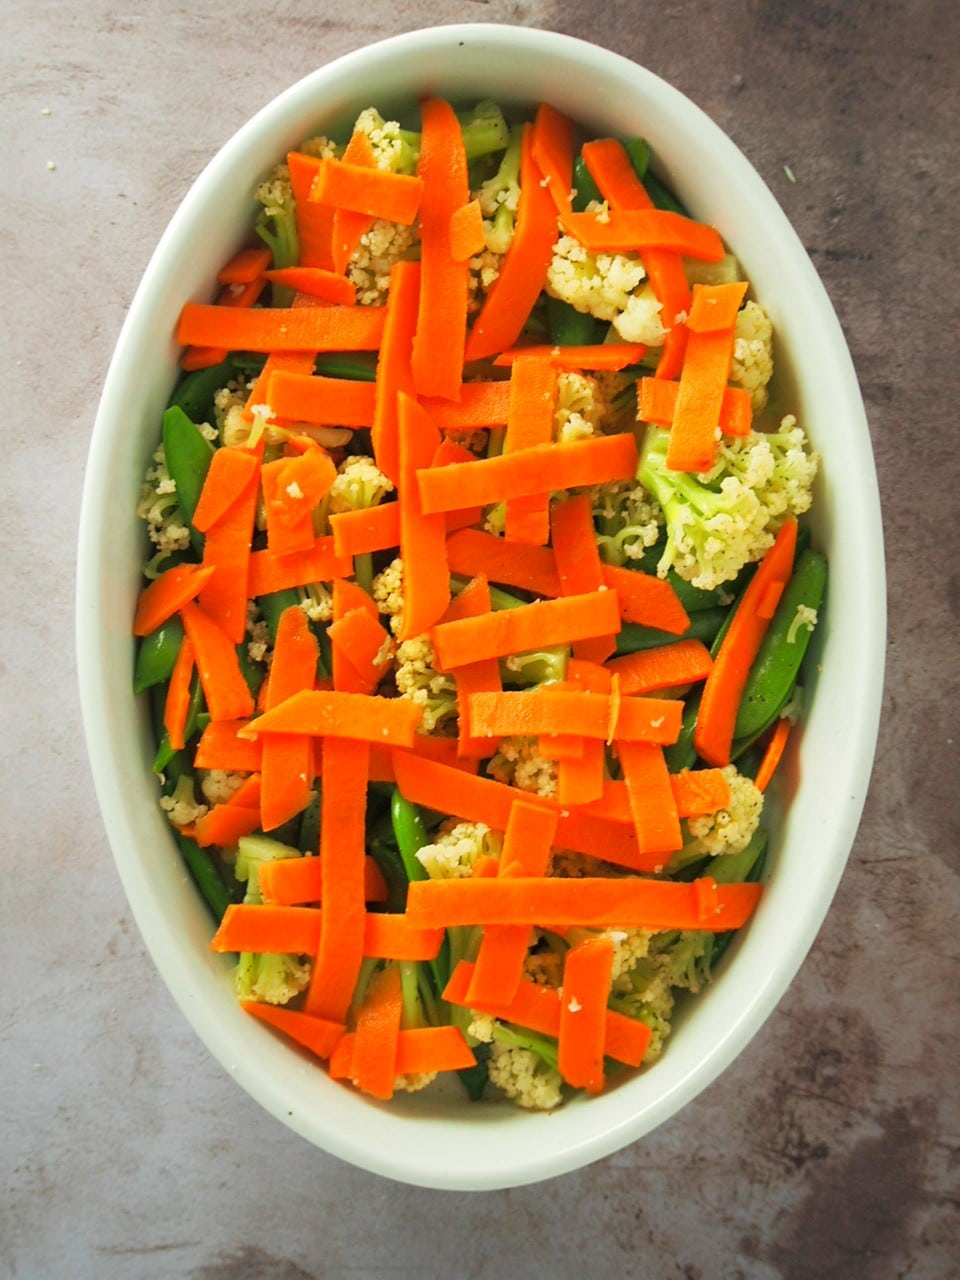 The blanched veggies arranged on a baking dish.